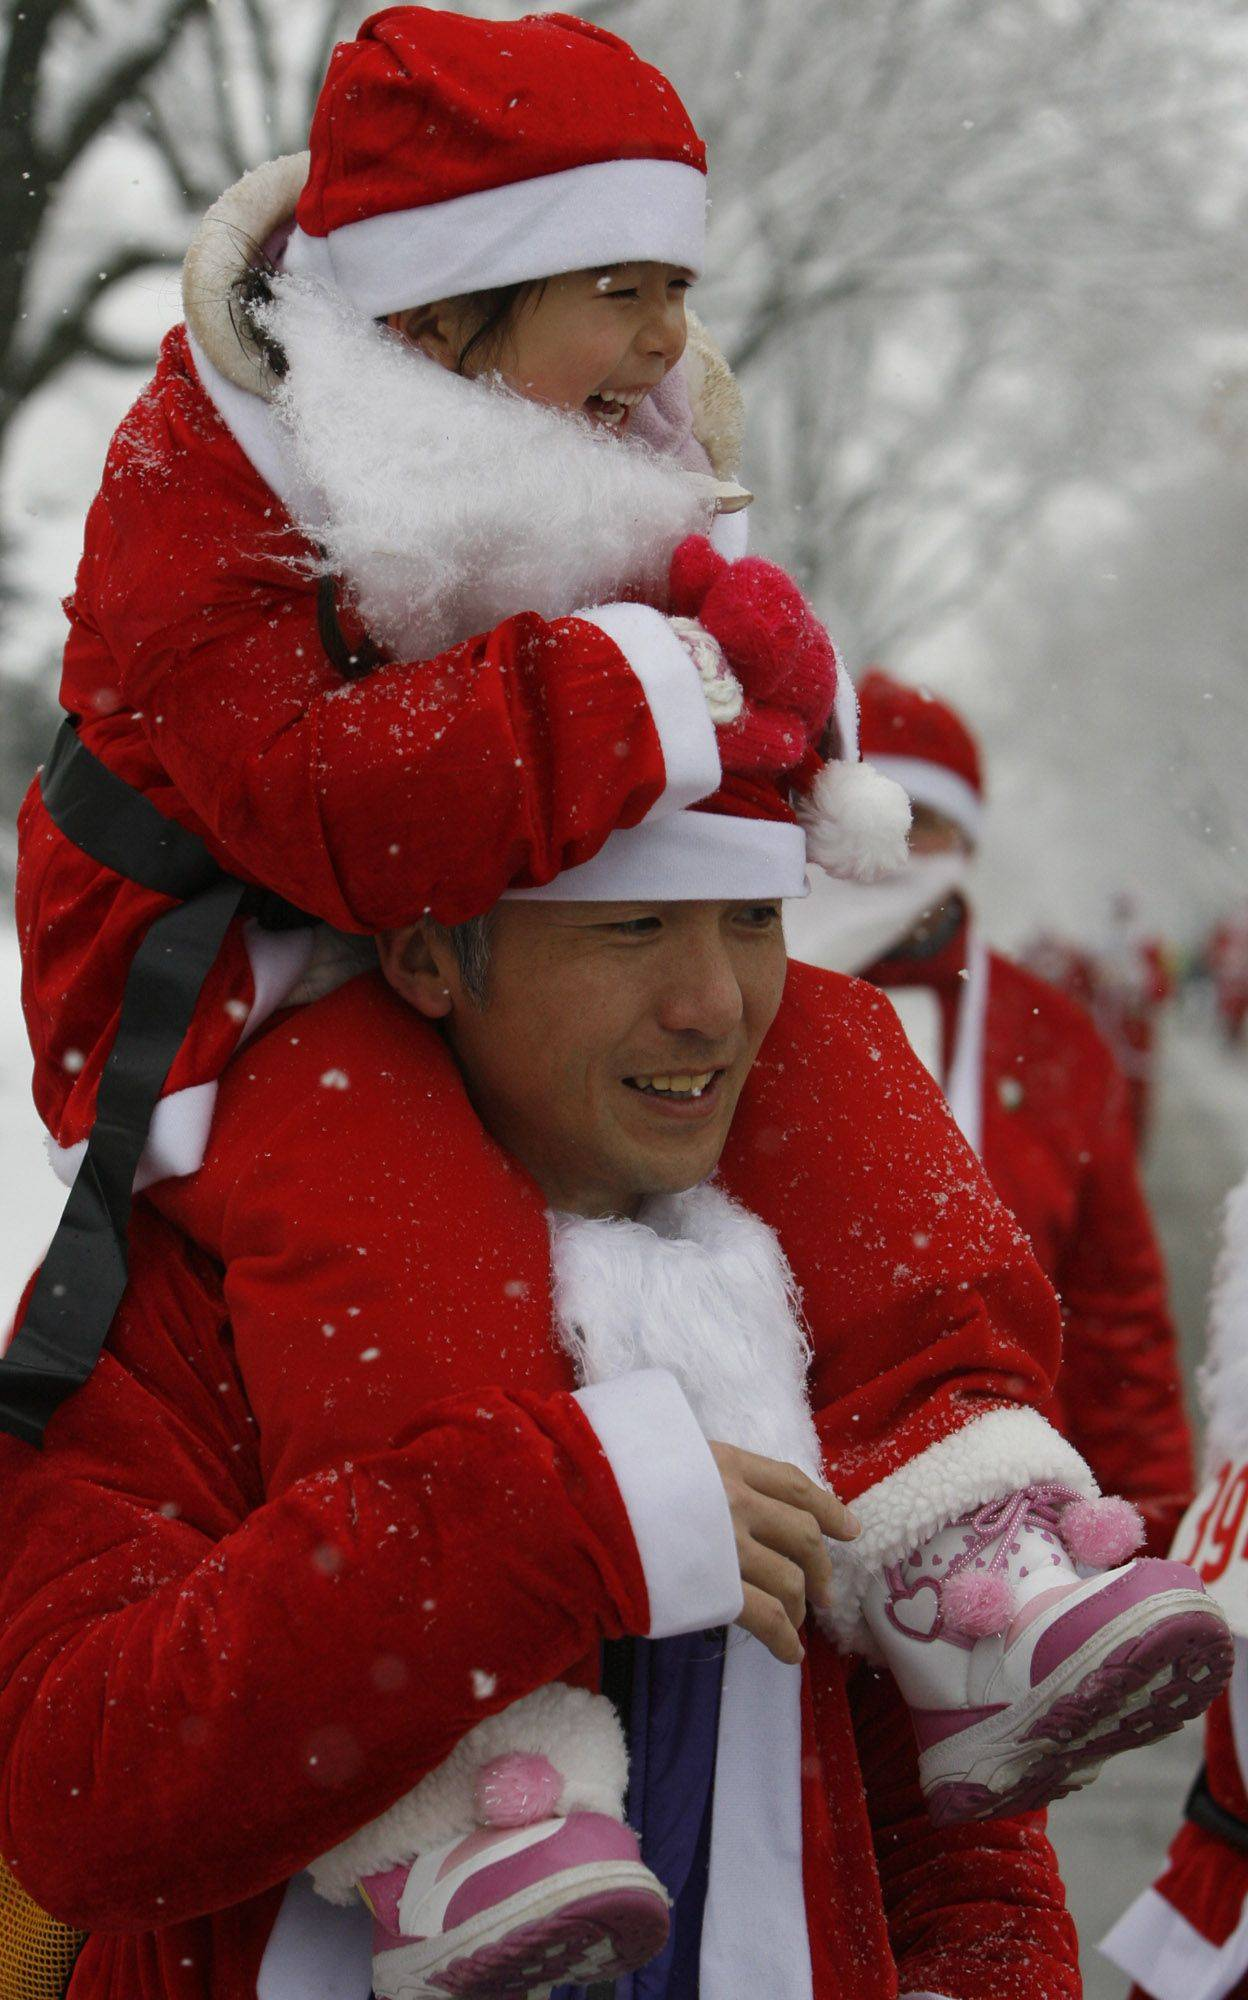 Over 1,000 runners braved the first snow of the season to participate in the Santa Sleigh 5K run in Arlington Heights on Saturday.